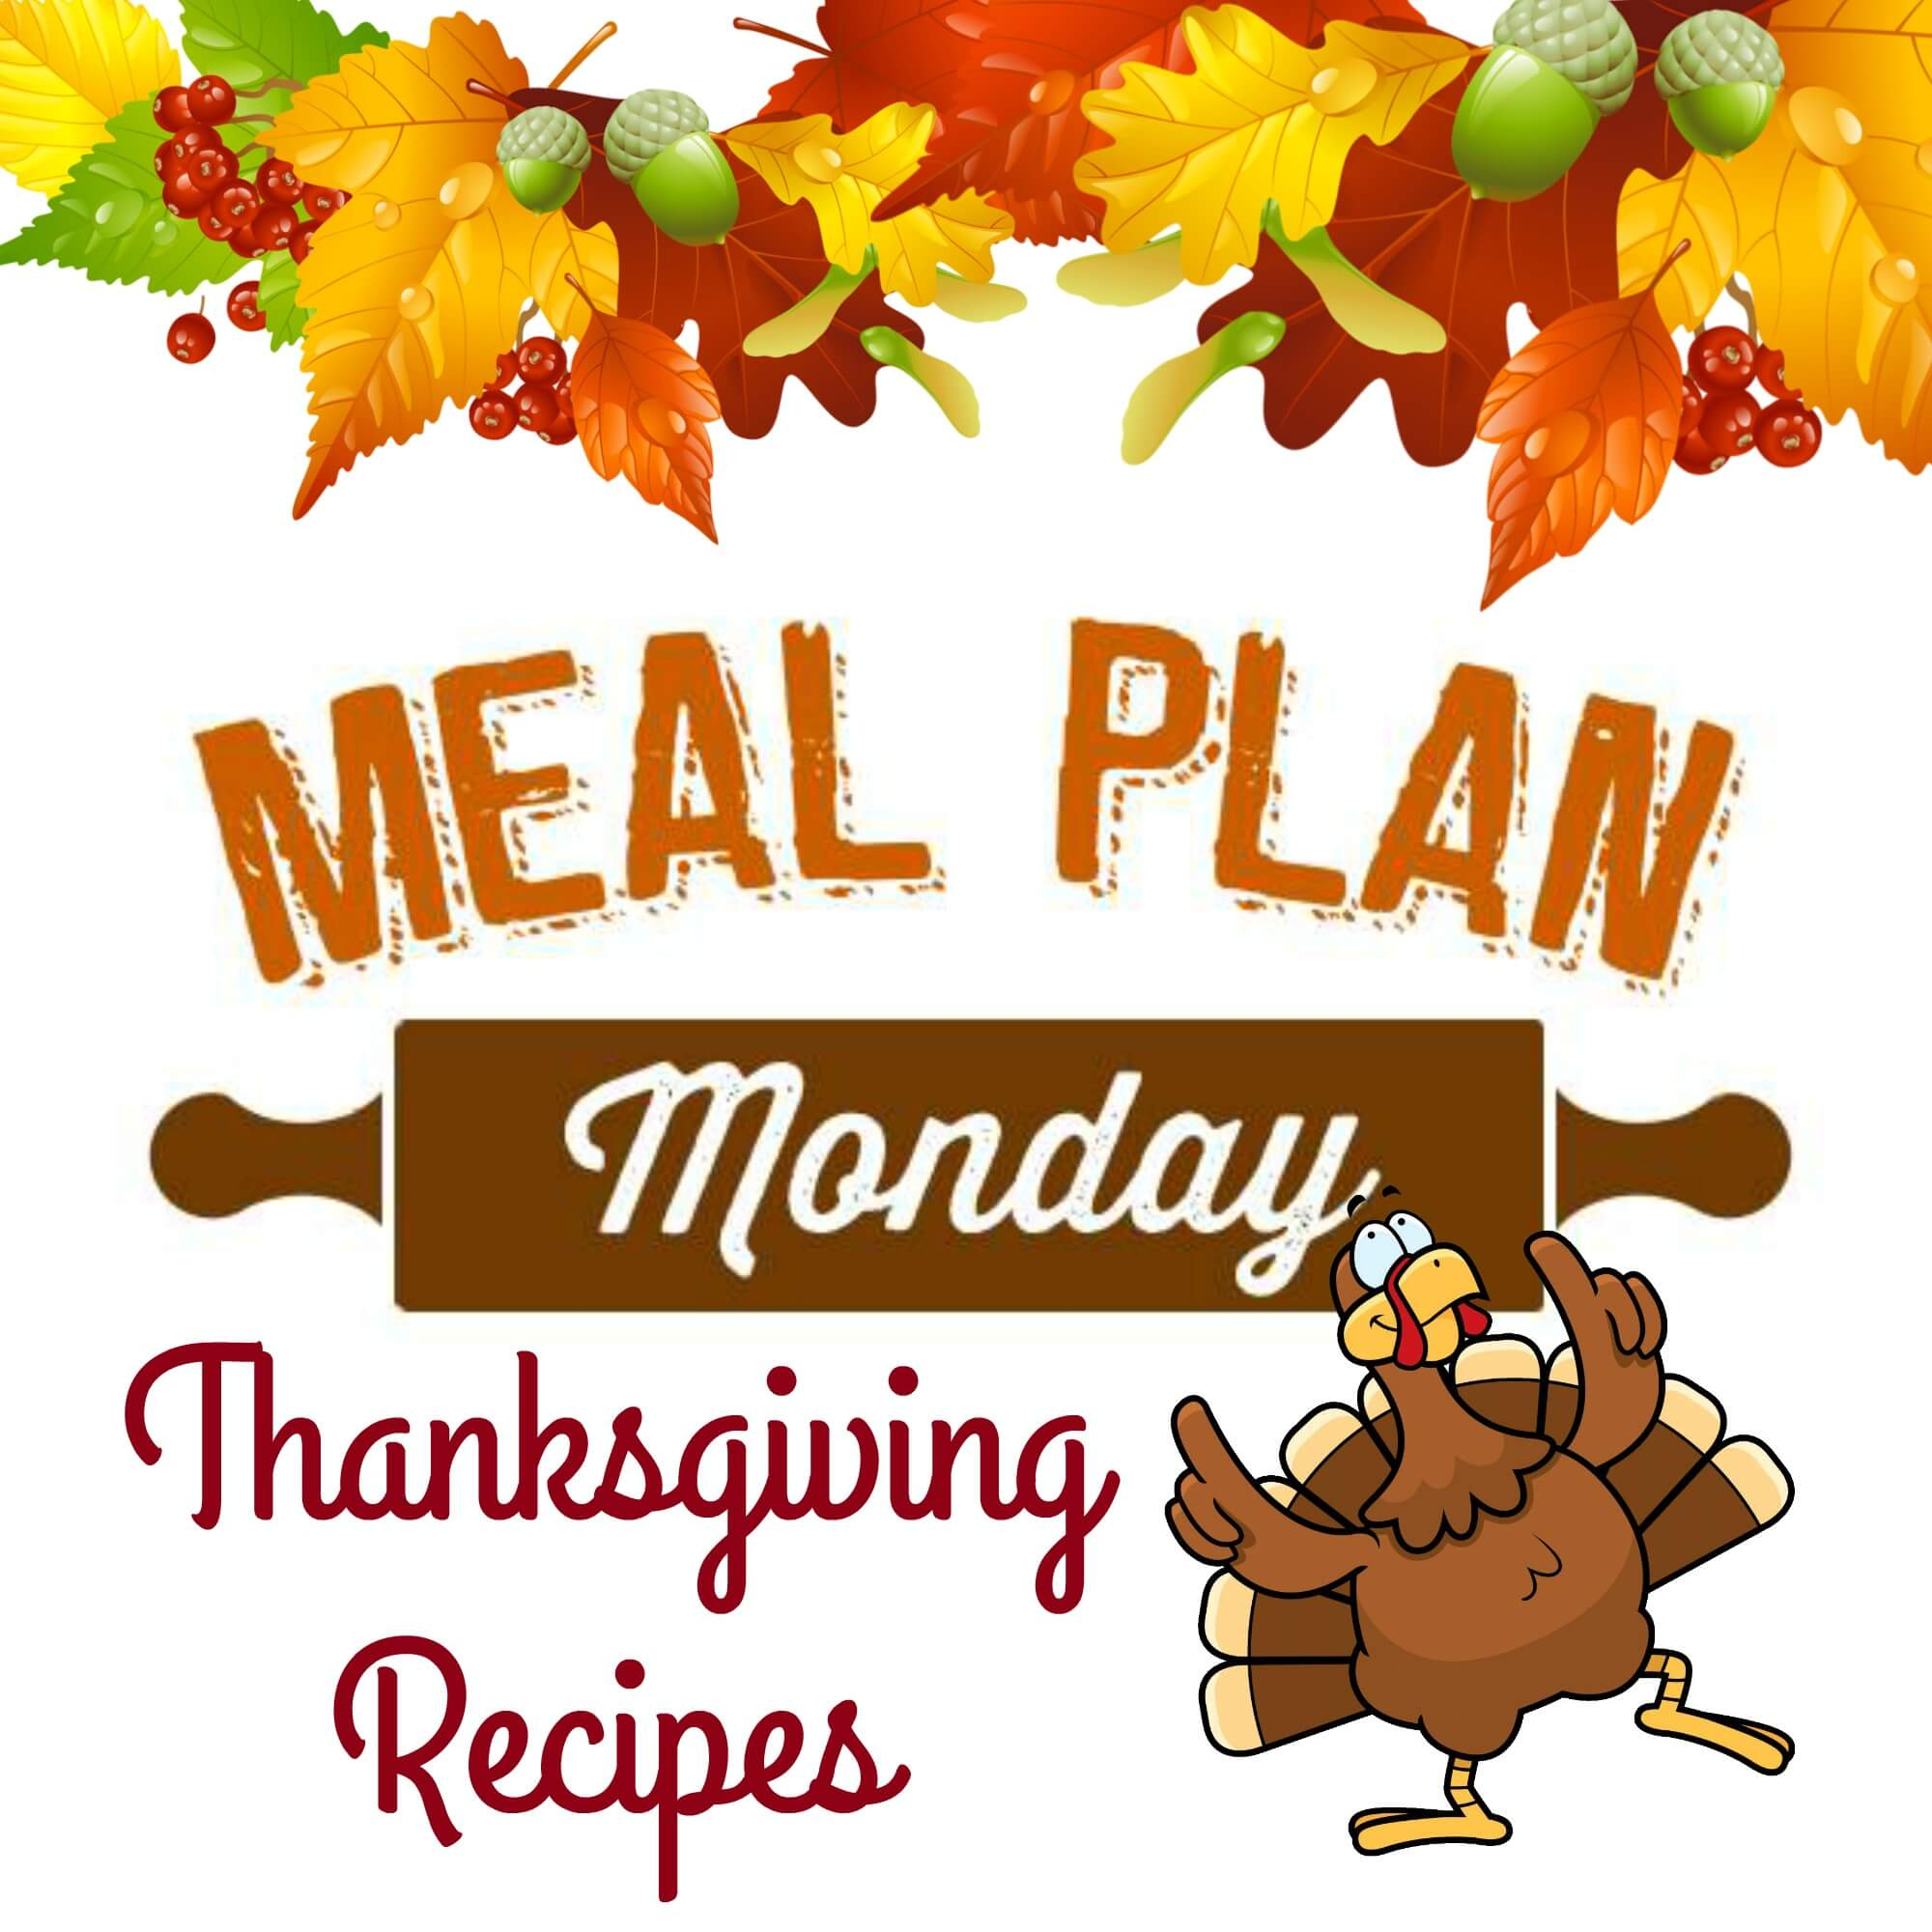 Thanksgiving Recipes - Meal Plan Monday